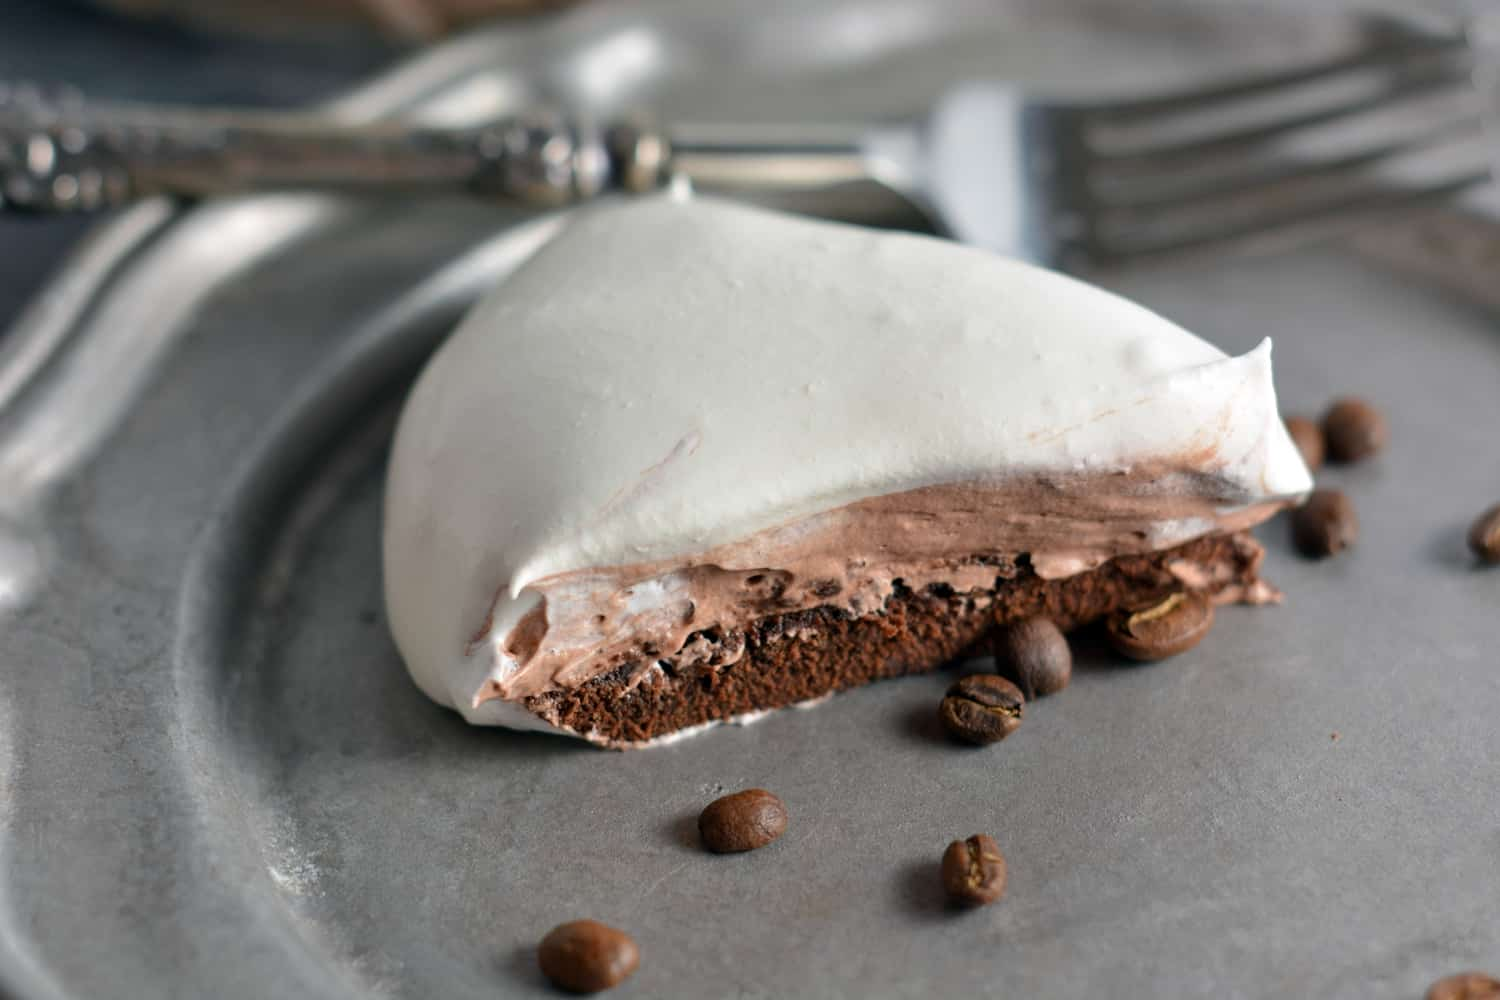 Mocha Cream Pie Recipe- Three layers of brownie base, chocolate pudding and whipped cream top.